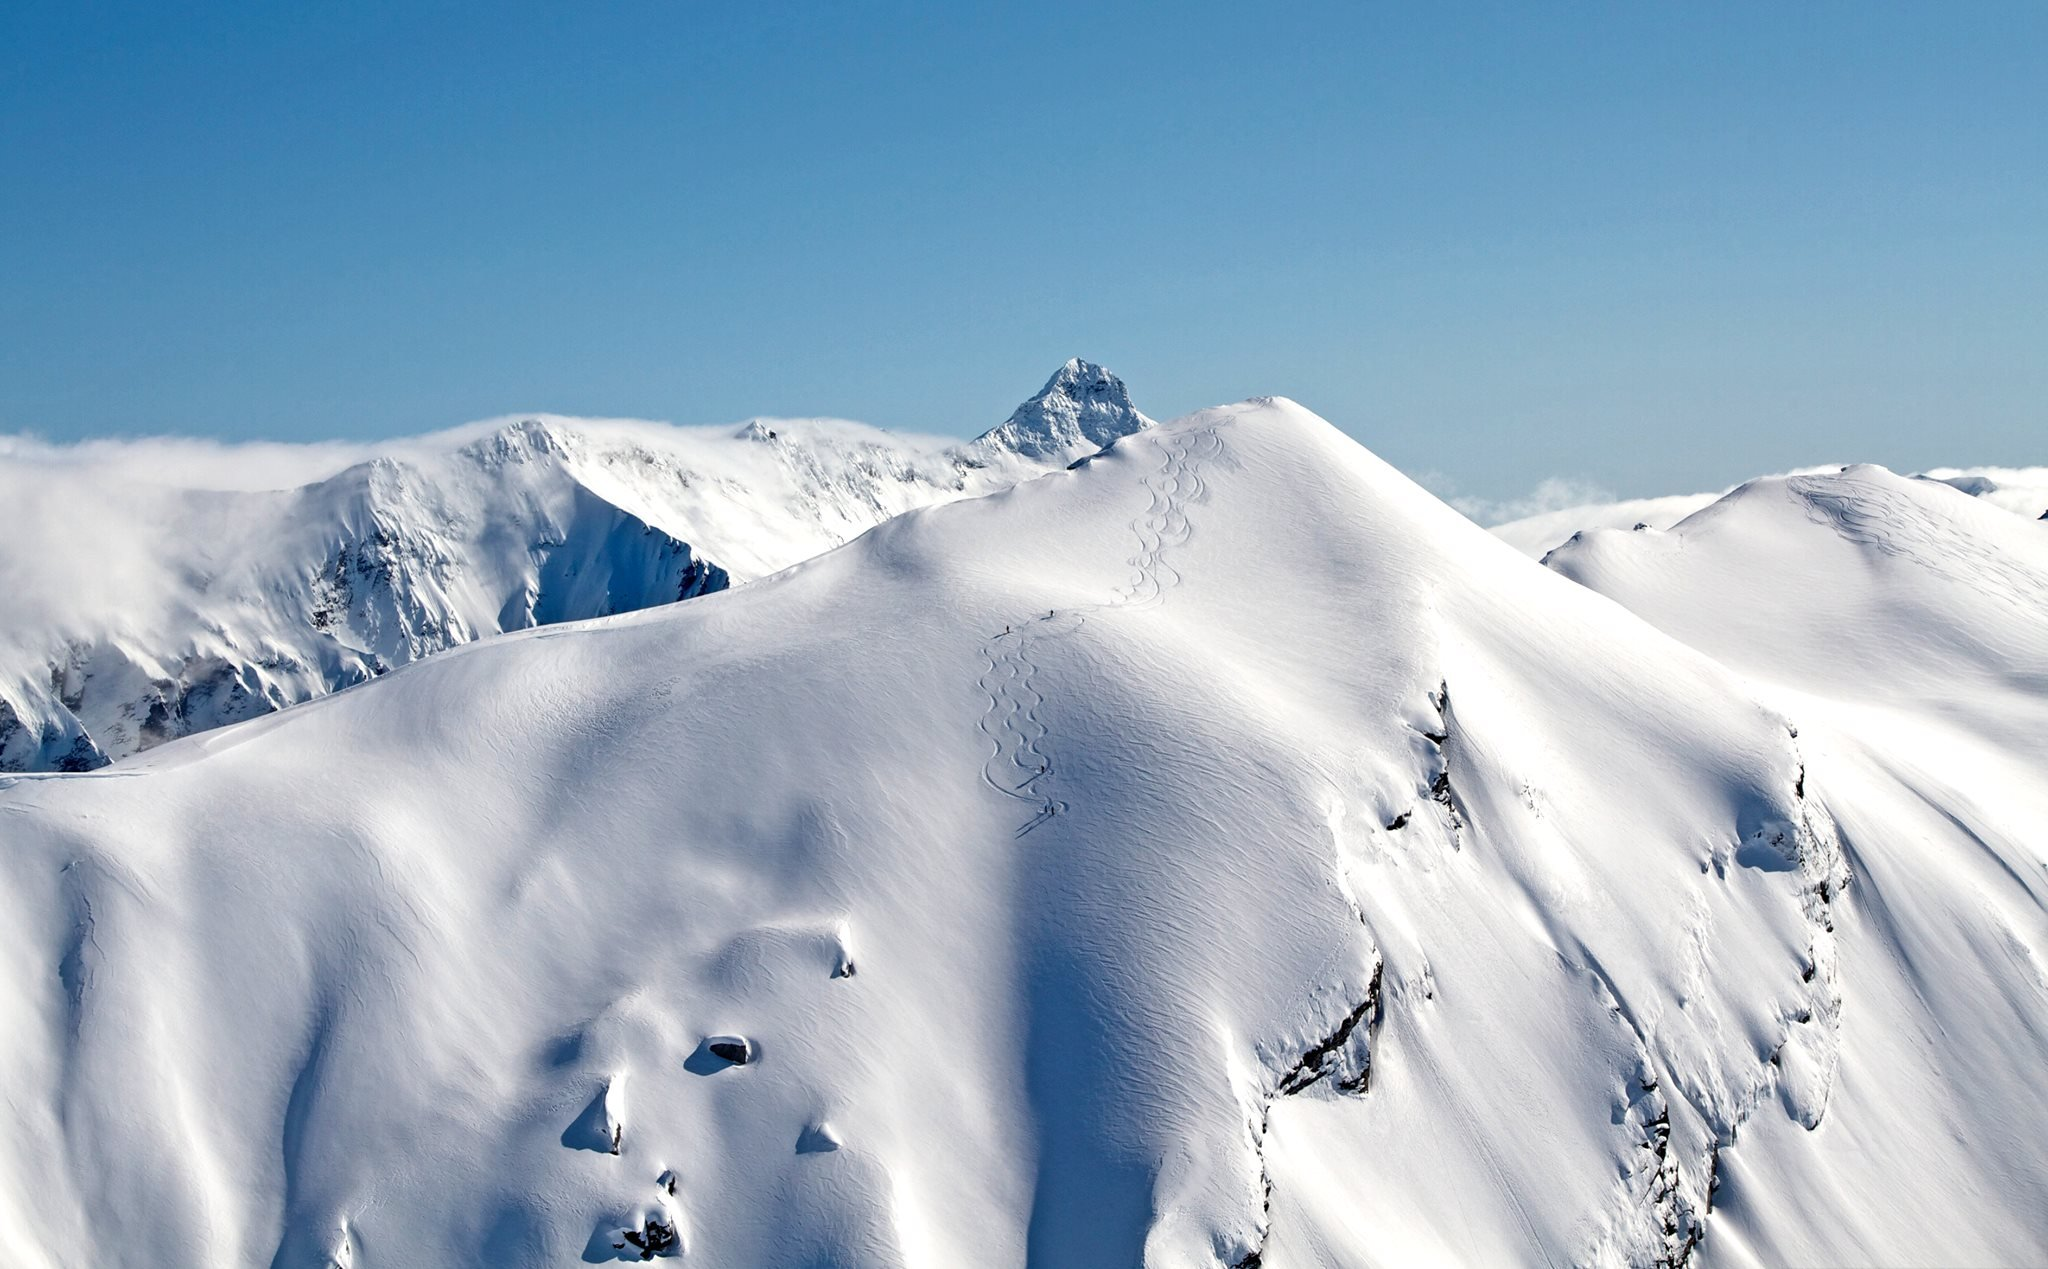 Go heliskiing on the highest peaks without crowds.